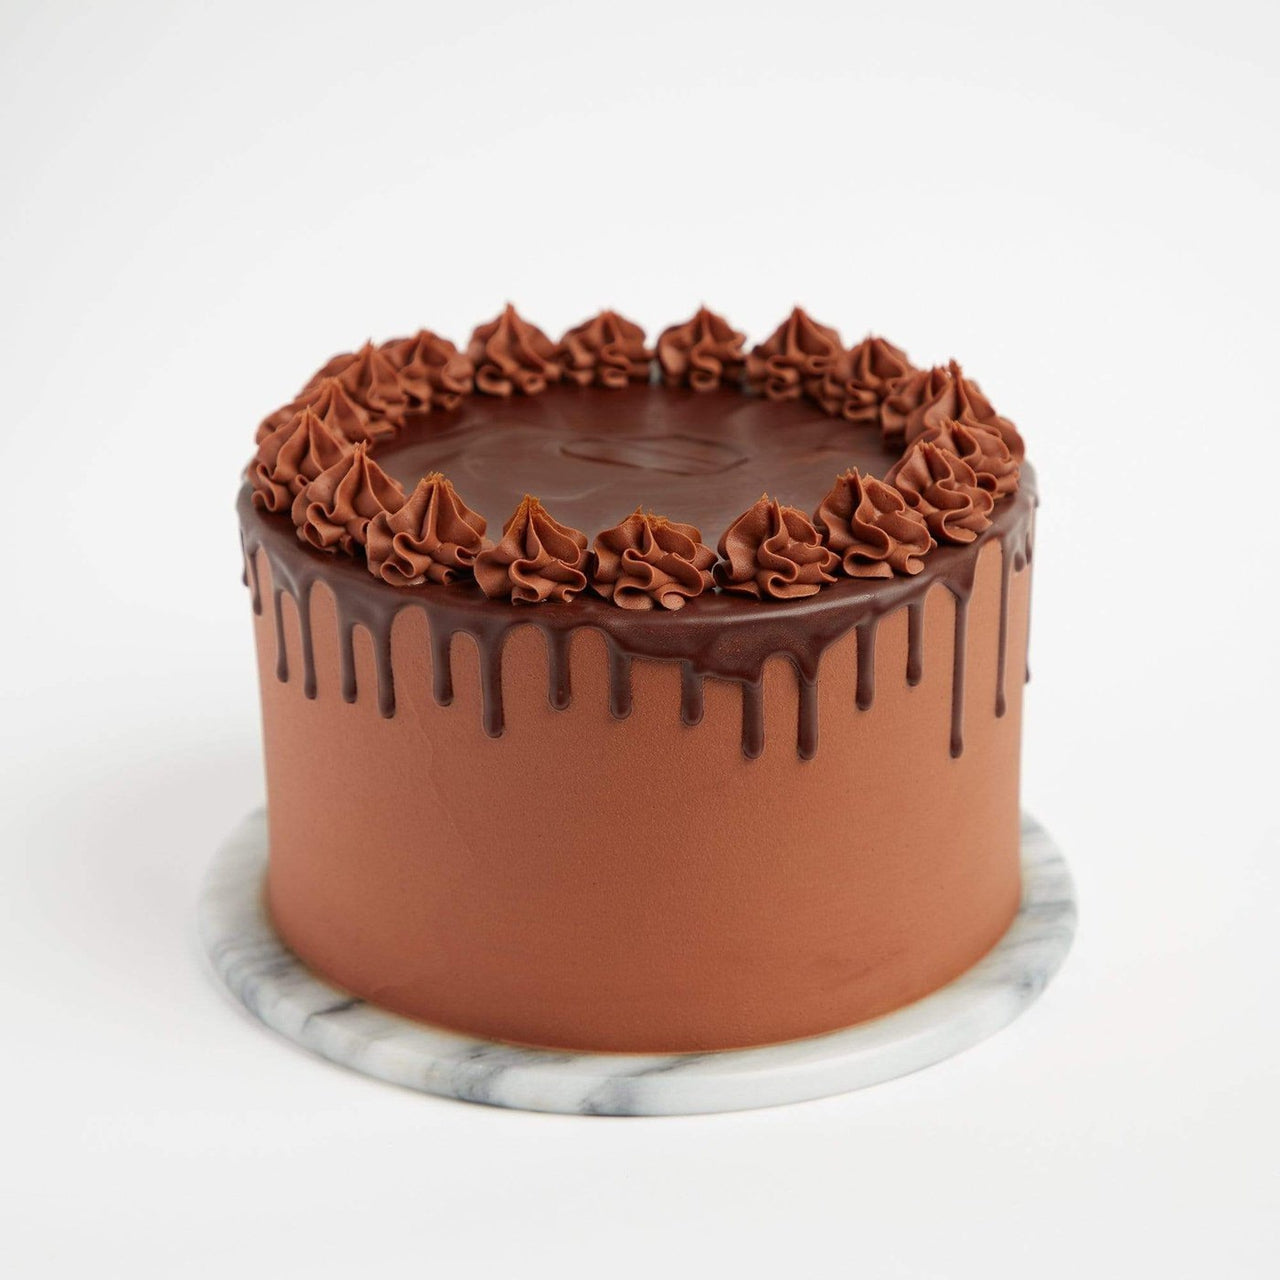 Vegan Chocolate Cake by Crumbs & Doilies